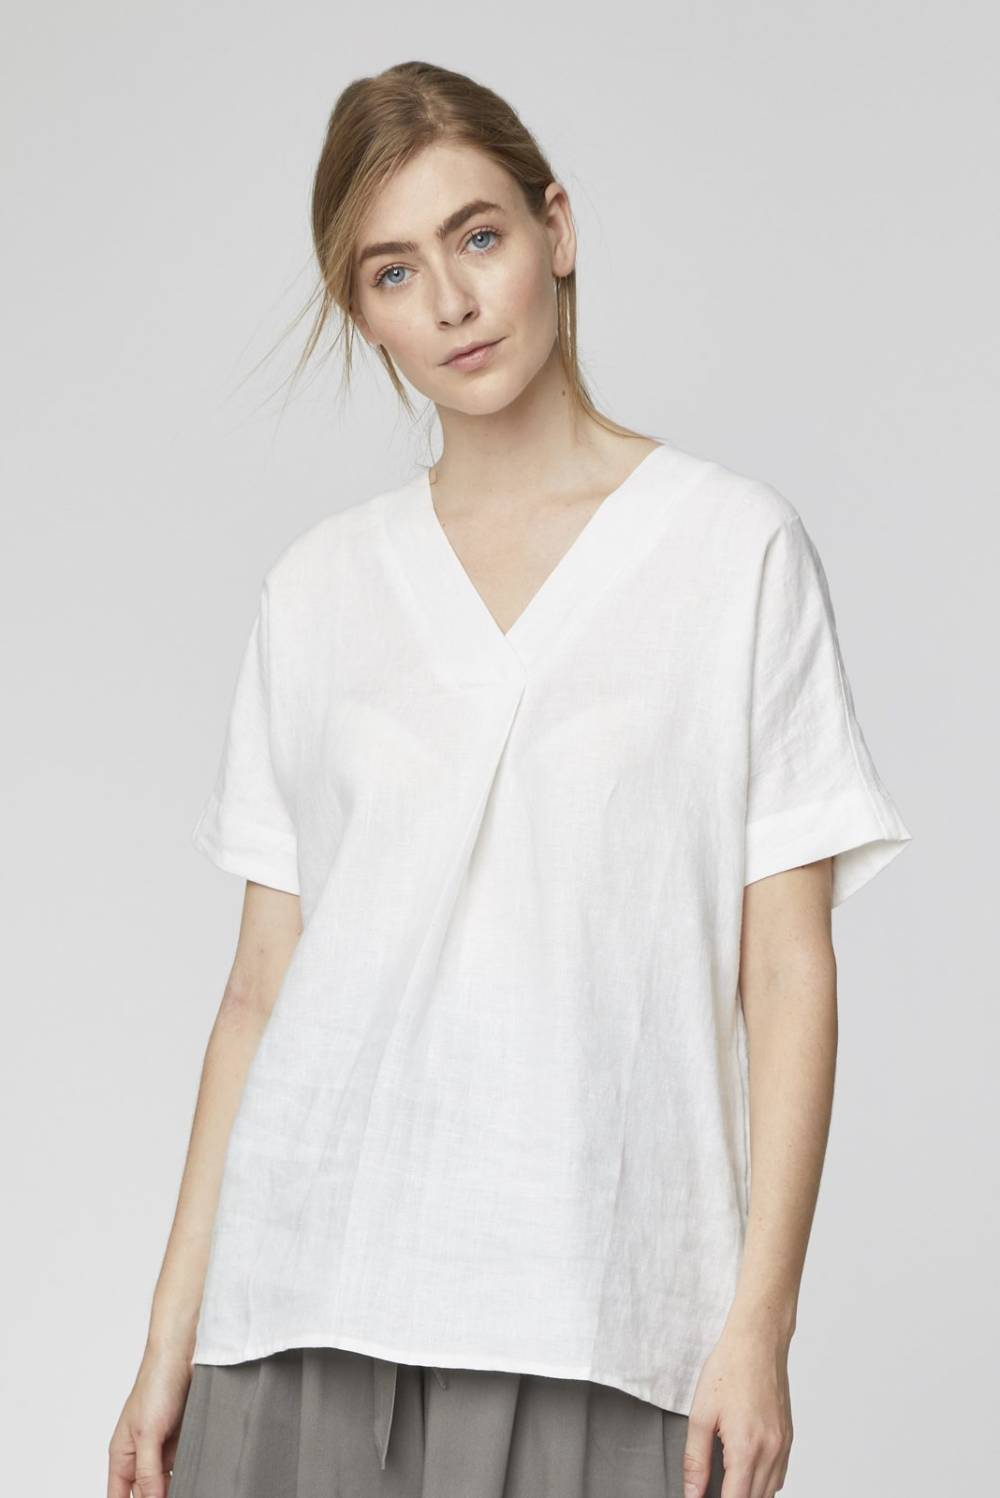 WST4148 Rosabel Top Thought Clothing Katie Kerr Women's Clothing